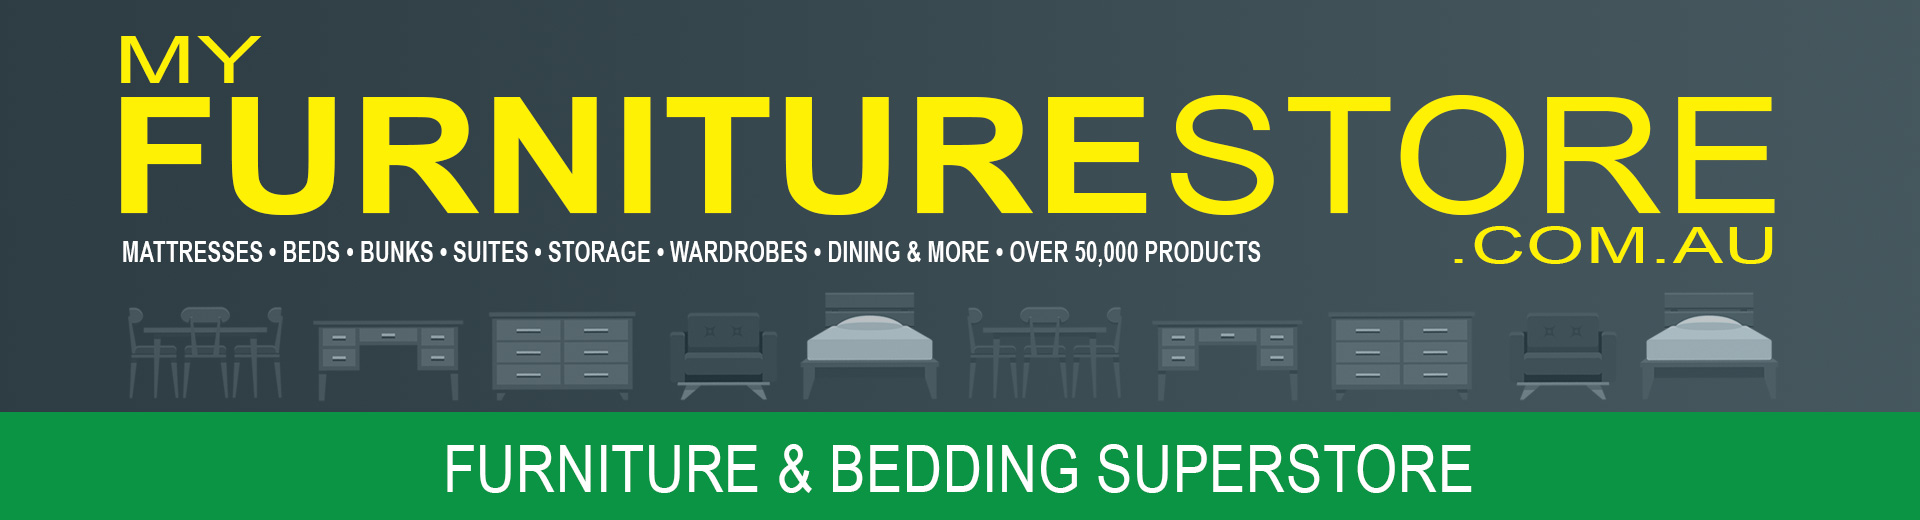 My Furniture Store - Furniture and Bedding Super Store - Australia